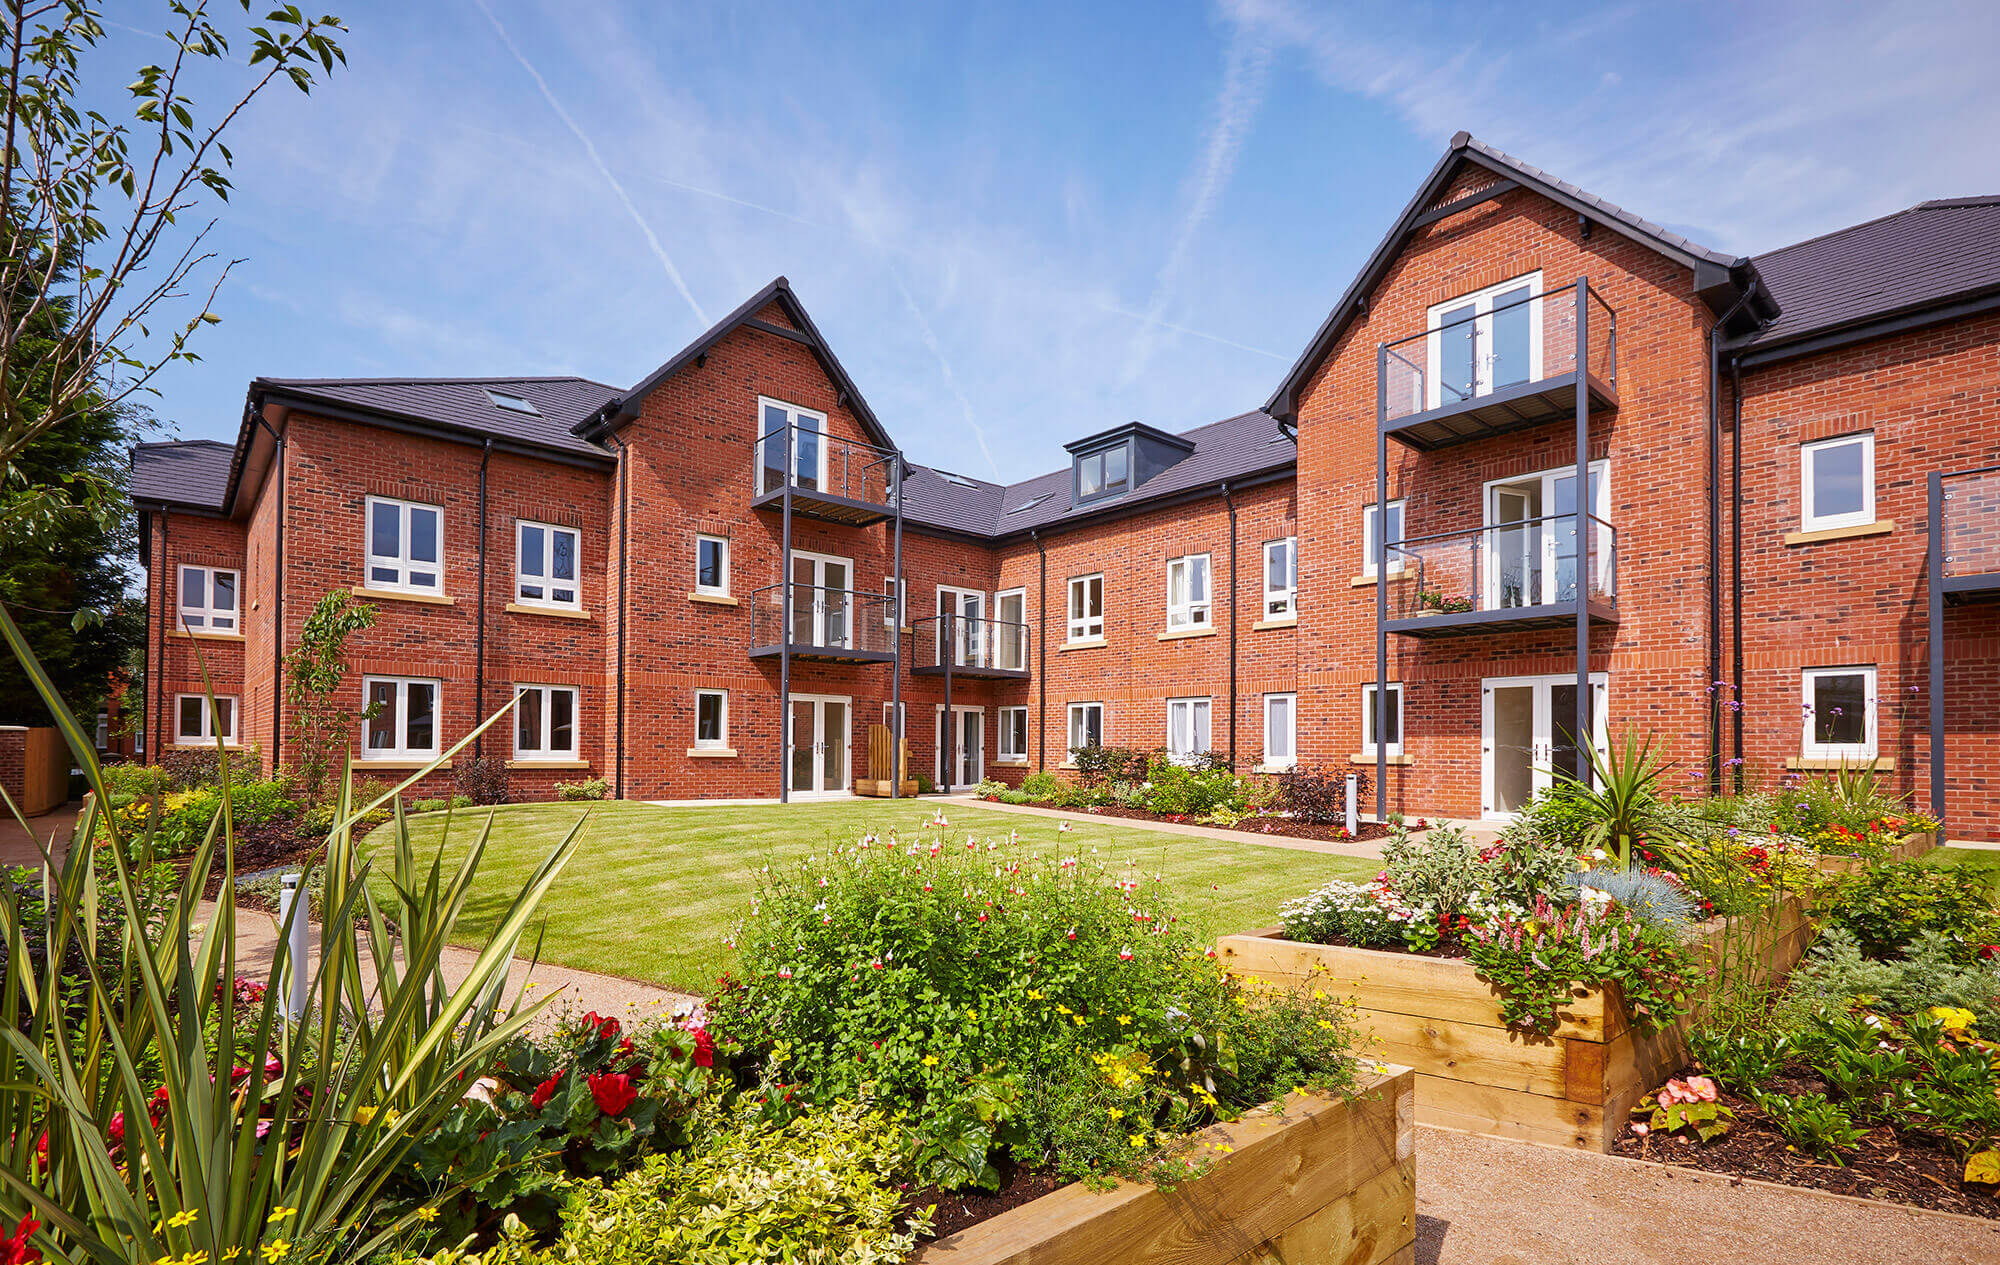 The Chimes_Cheadle_Retirement_Living